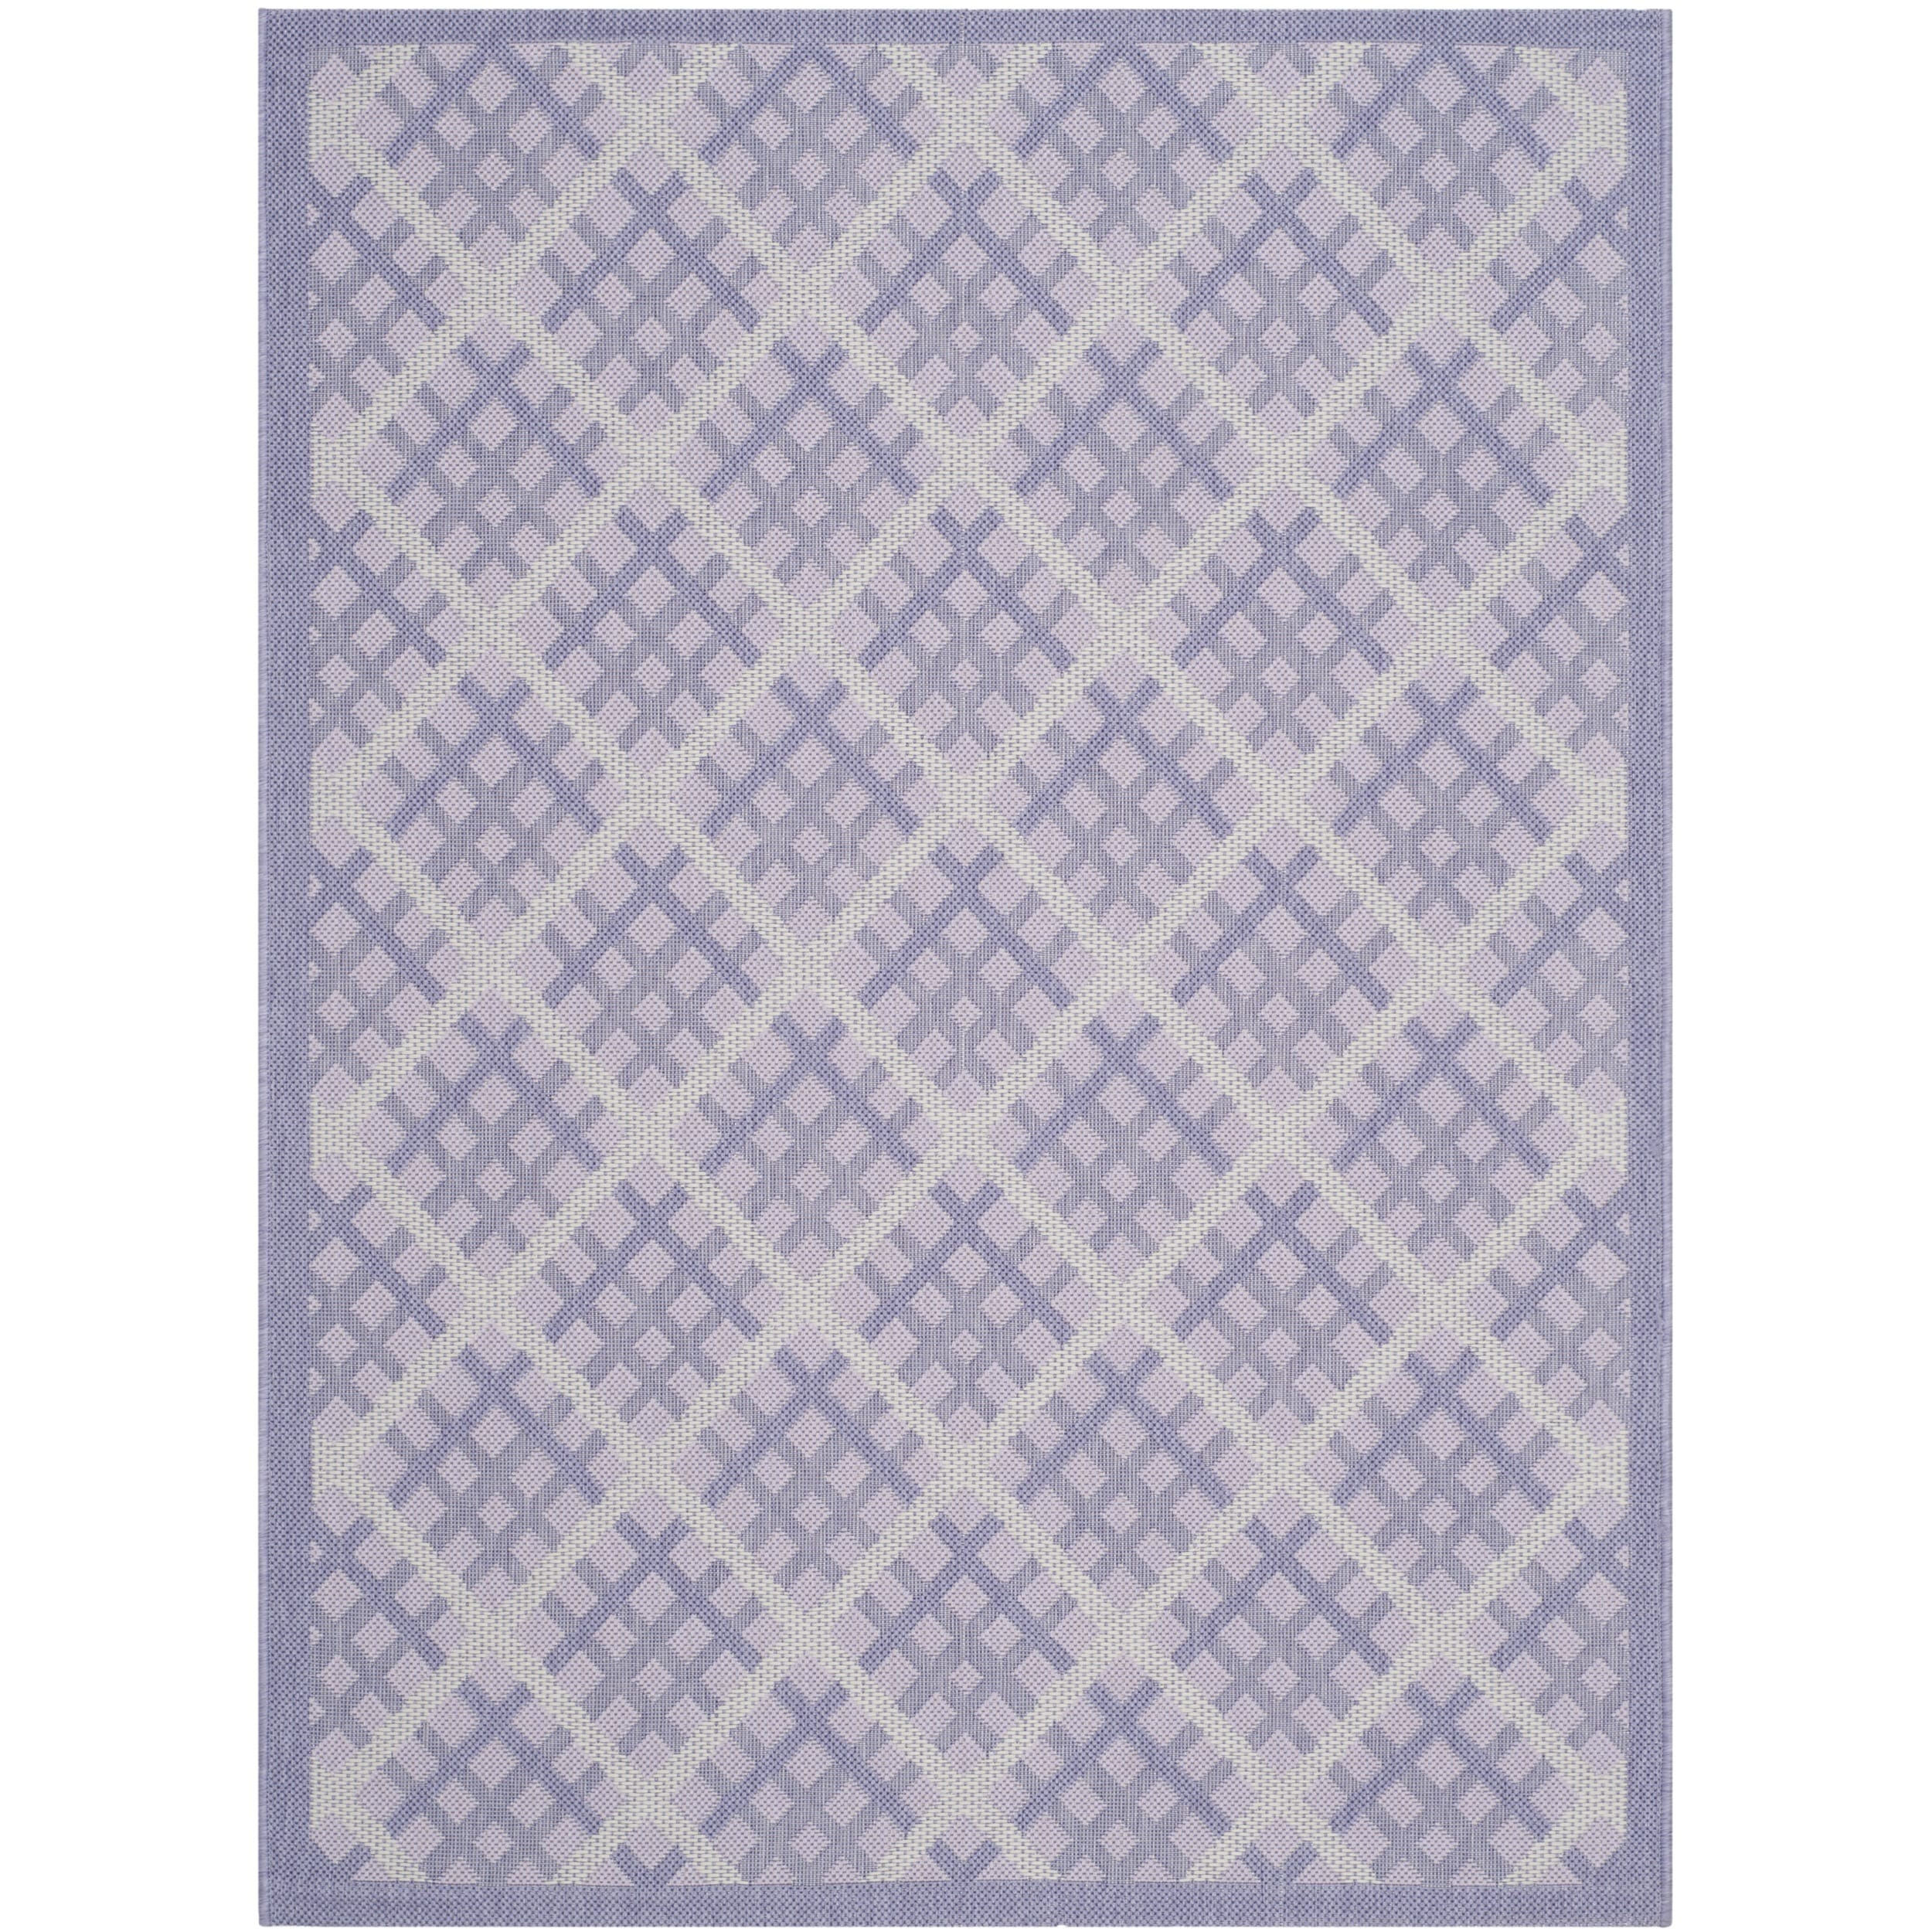 Safavieh Indoor/ Outdoor Courtyard Lilac/ Dark Lilac Rug (5'3 x 7'7) at Sears.com